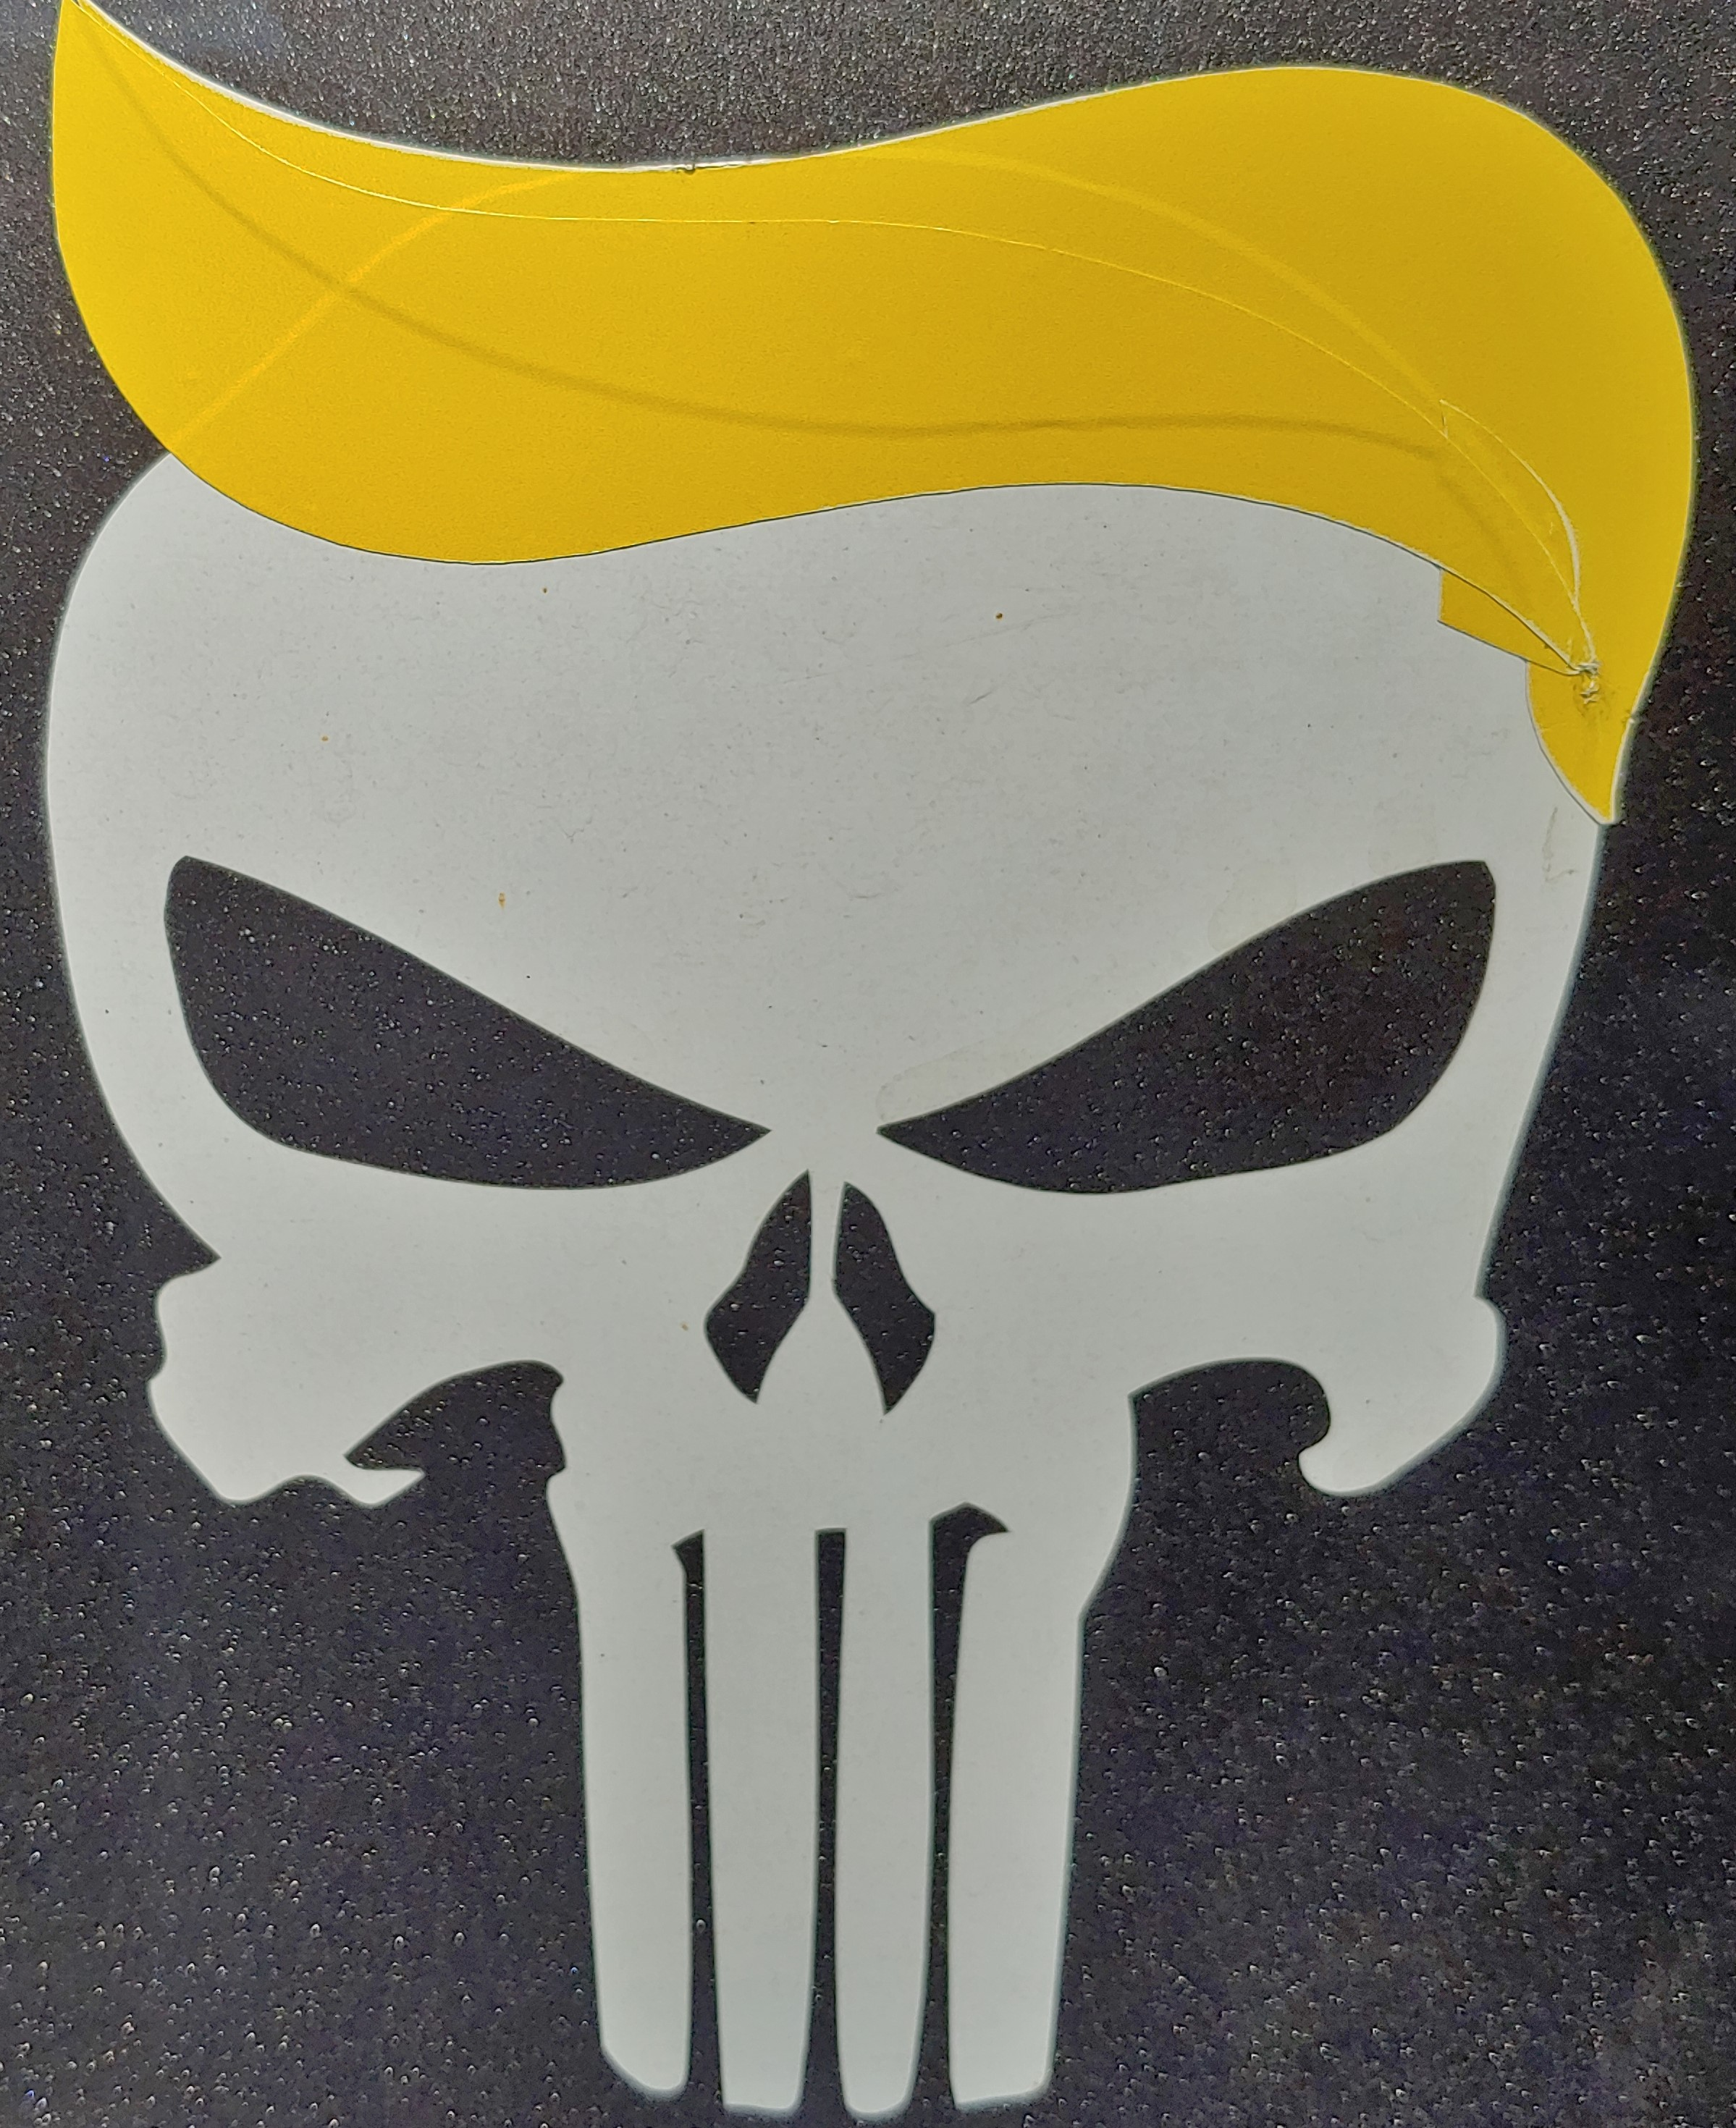 Trump the Punisher